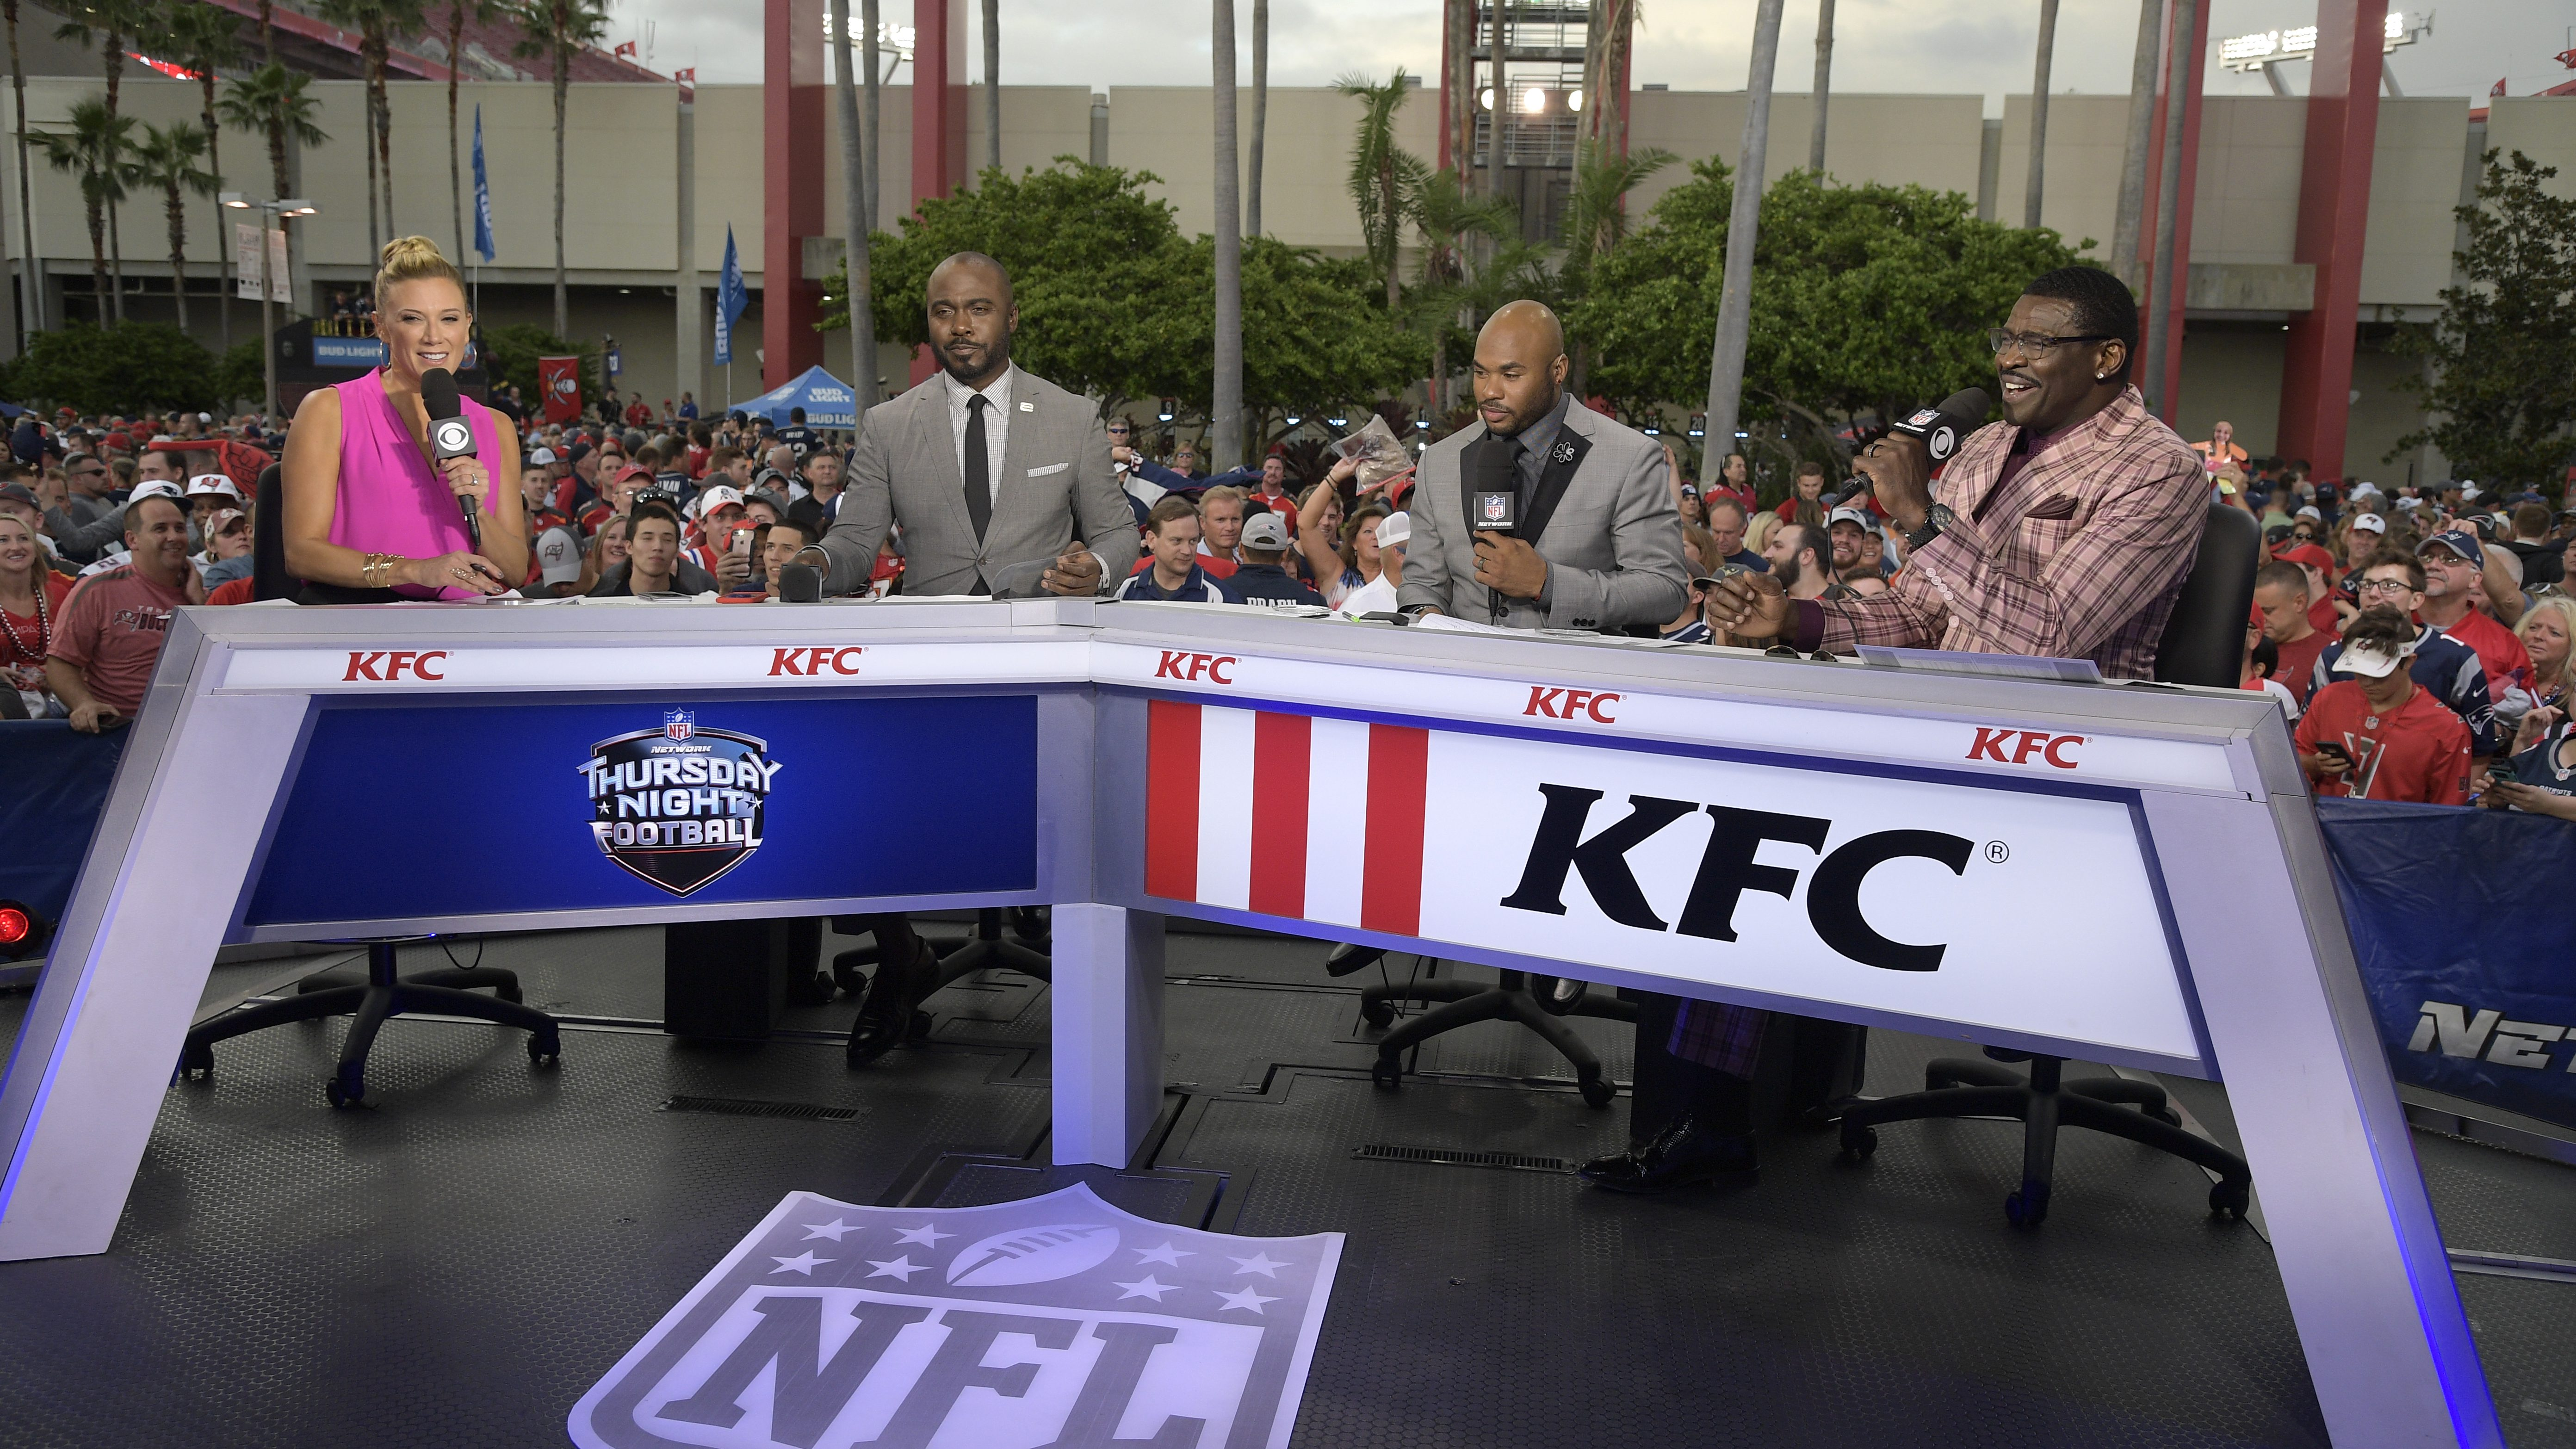 Thursday Night Football talent broadcast from a mobile set outside Raymond James Stadium before an NFL football game between the Tampa Bay Buccaneers and the New England Patriots Thursday, Oct. 5, 2017, in Tampa, Fla. (AP Photo/Phelan M. Ebenhack)